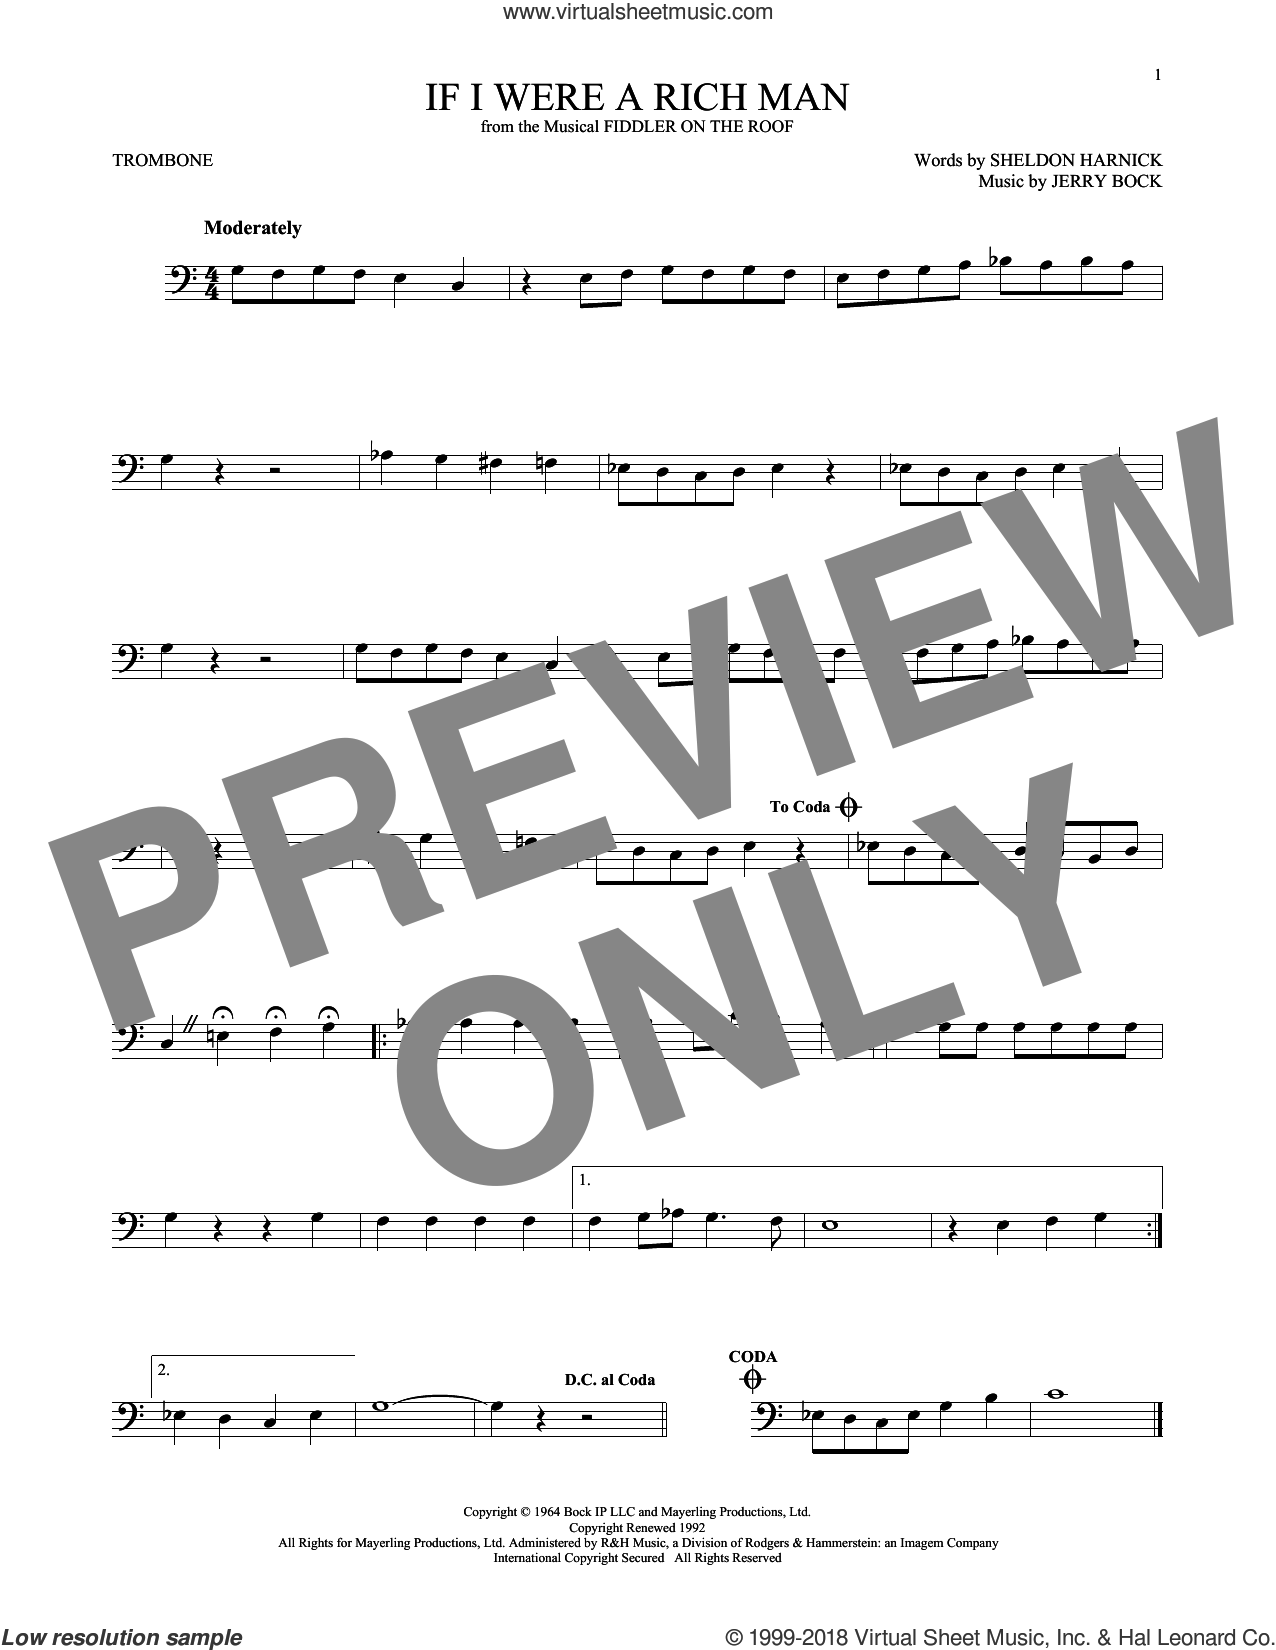 If I Were A Rich Man (from Fiddler On The Roof) sheet music for trombone solo by Bock & Harnick, Jerry Bock and Sheldon Harnick, intermediate skill level